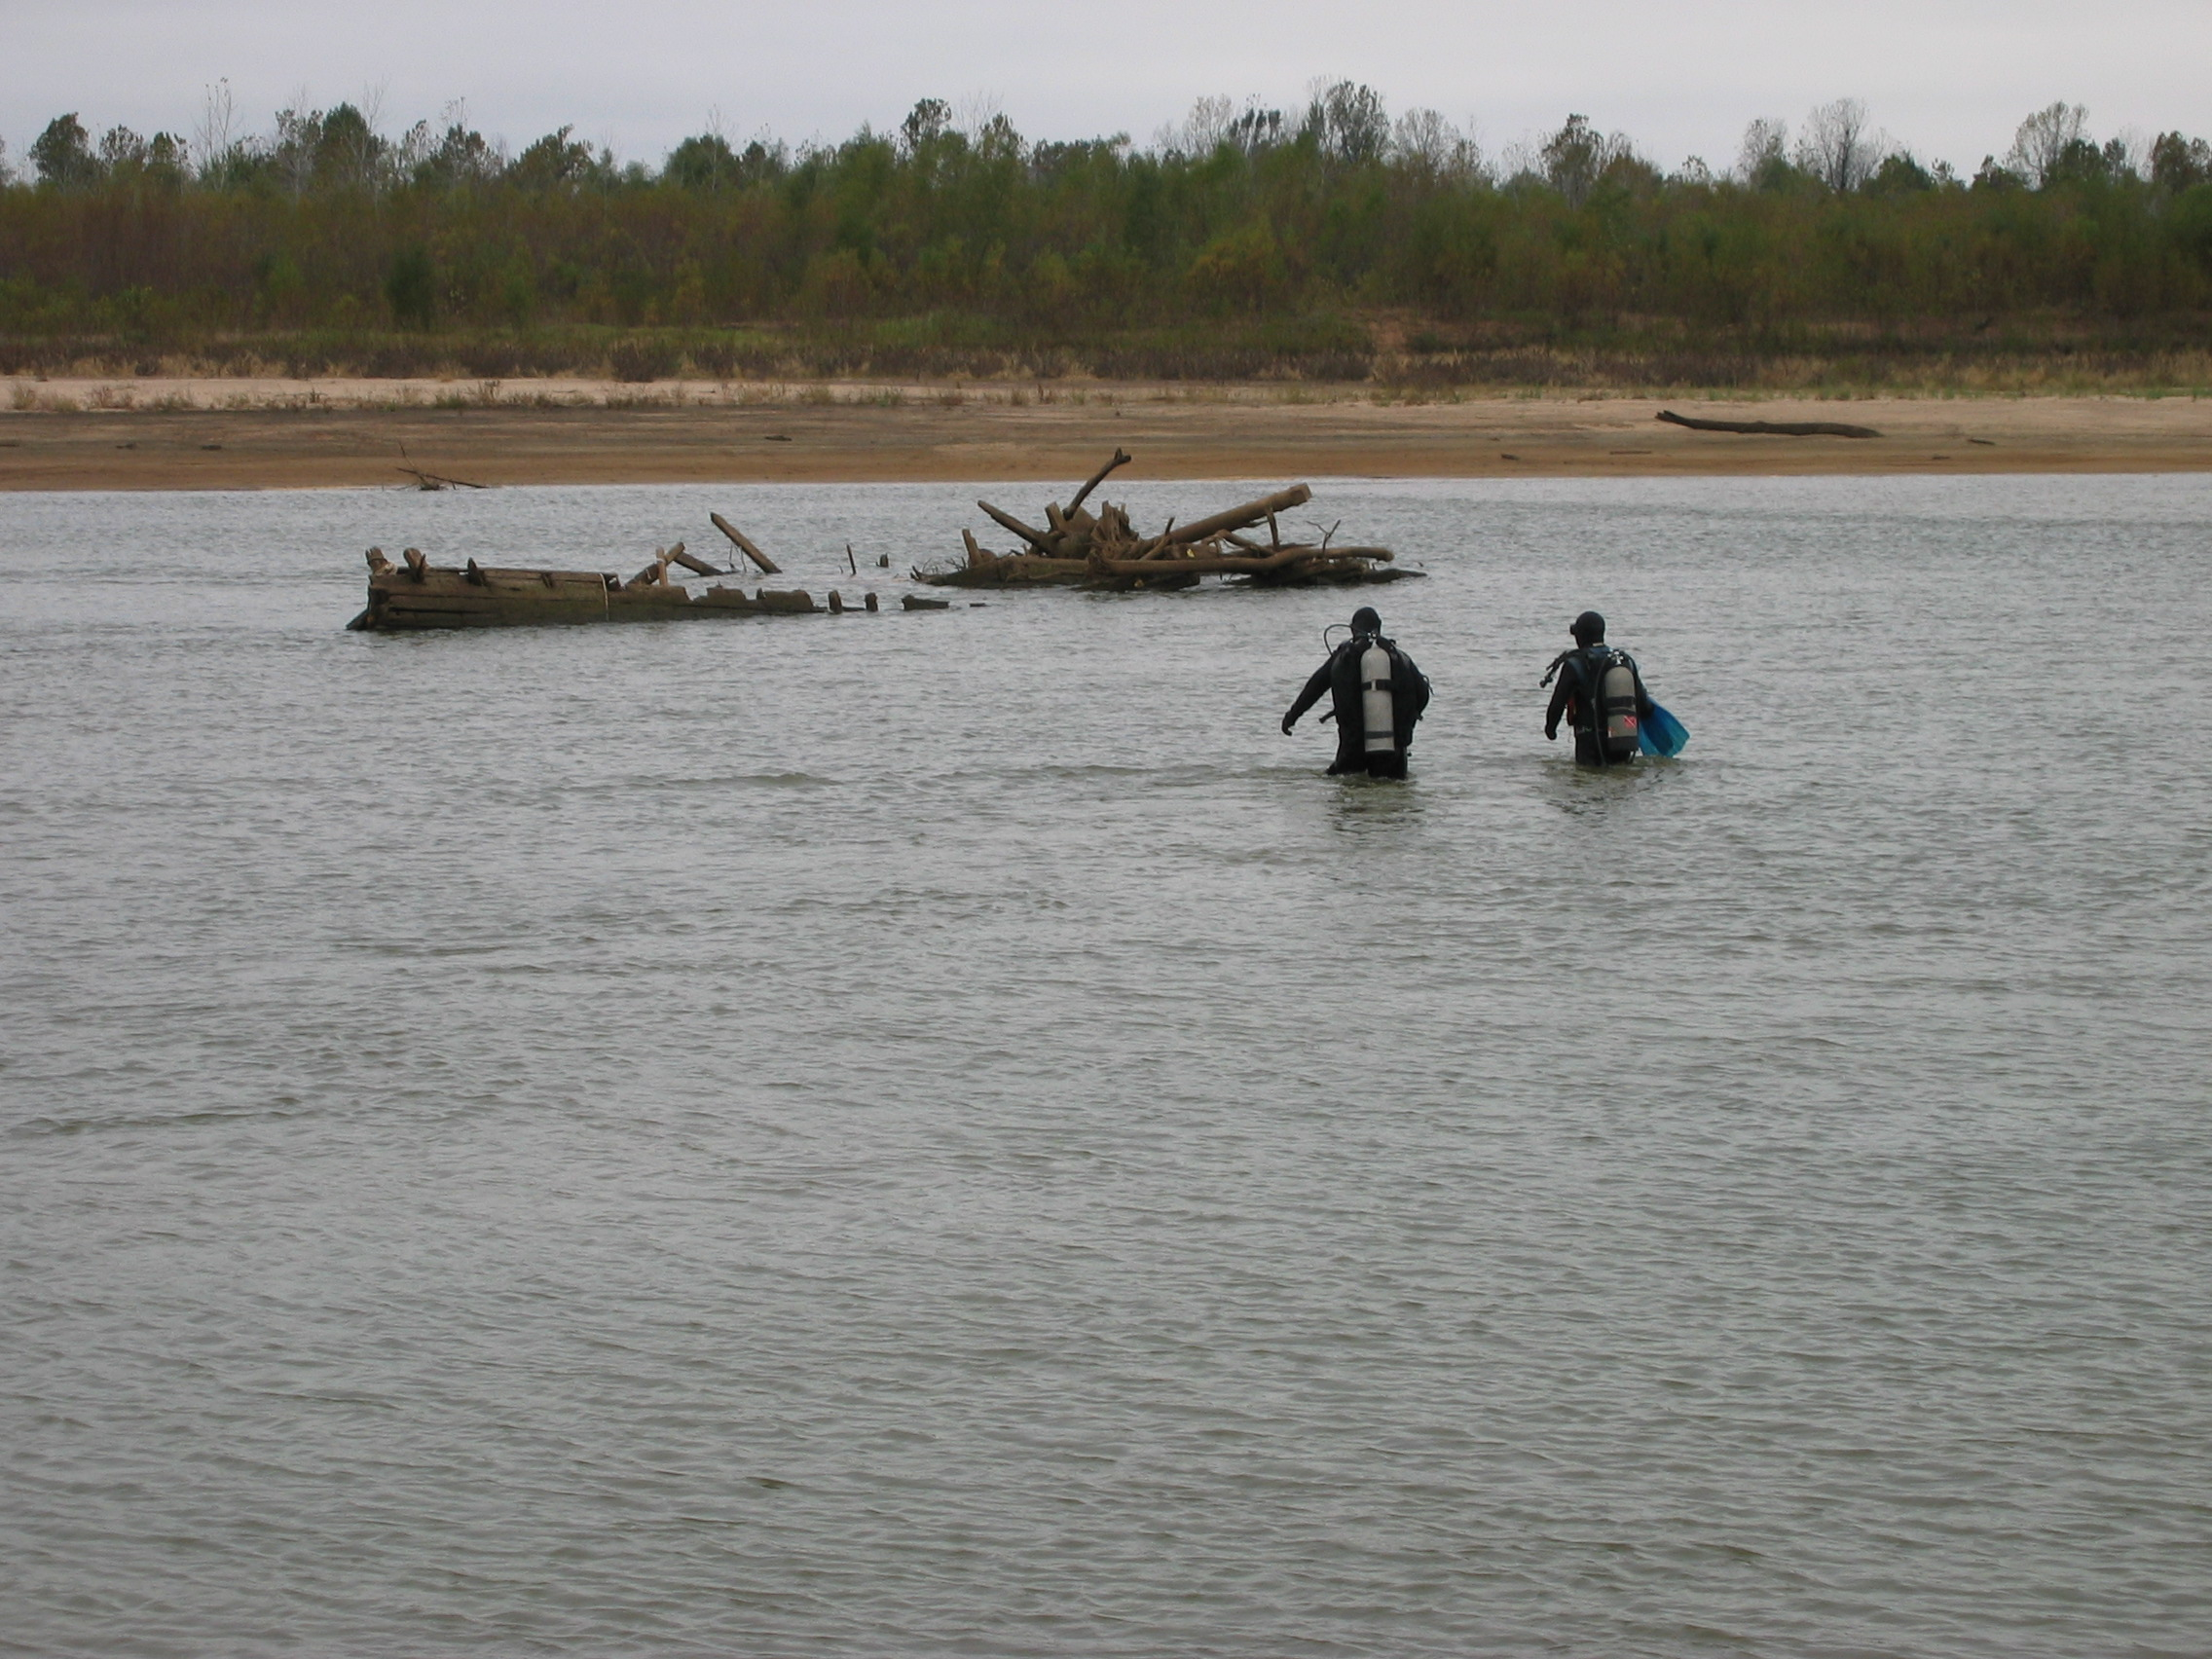 Two persons in SCUBA gear wade through shallow river water to reach a shipwreck